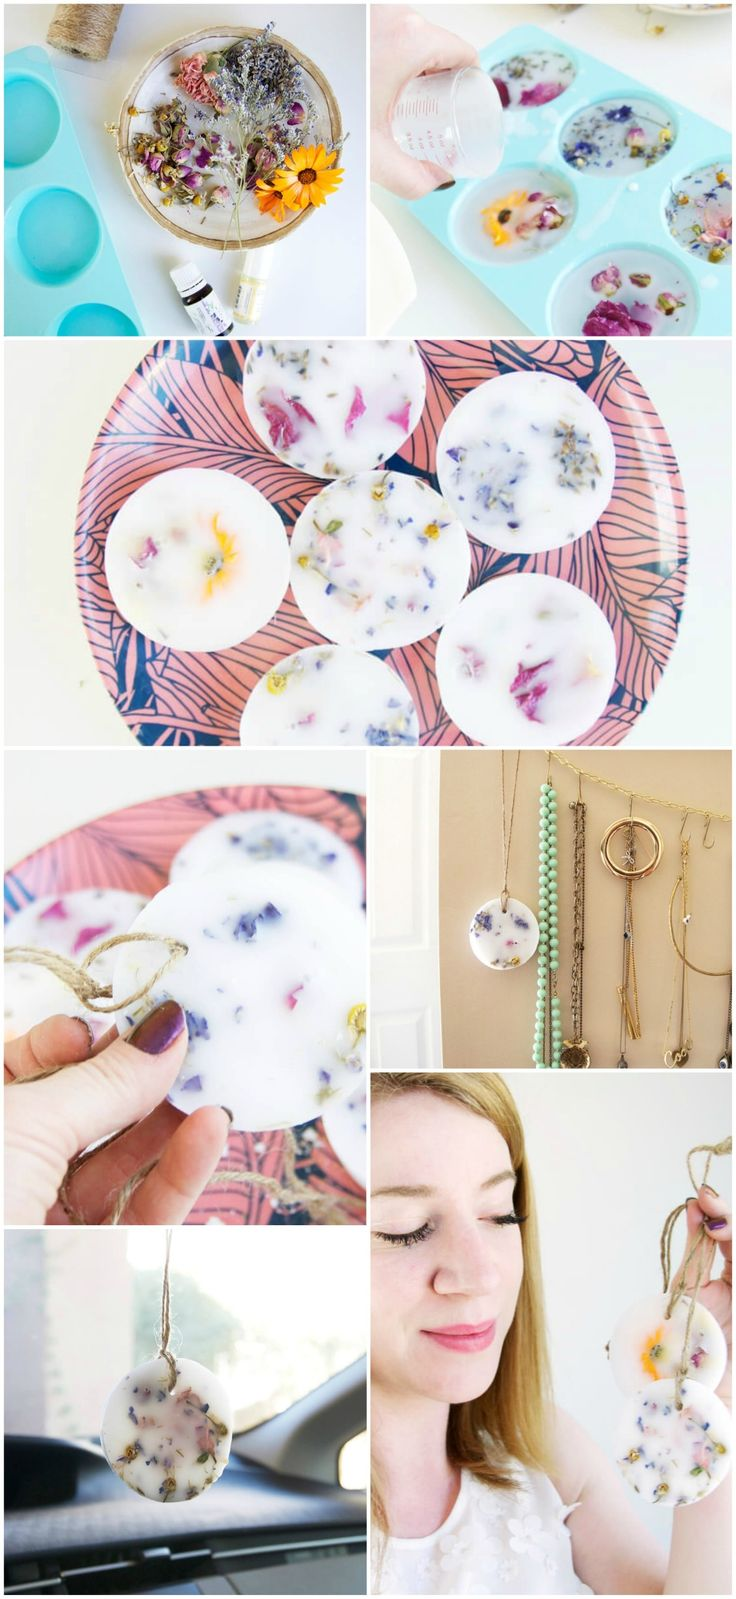 'Tis the season for spring cleaning, and along with that comes an inherent desire to make everything in your home smell amazing. Try our DIY for these beautiful, scented floral wax sachets that you can tuck into your drawers, hang in your entryway, or loop around a hanger in your closet.